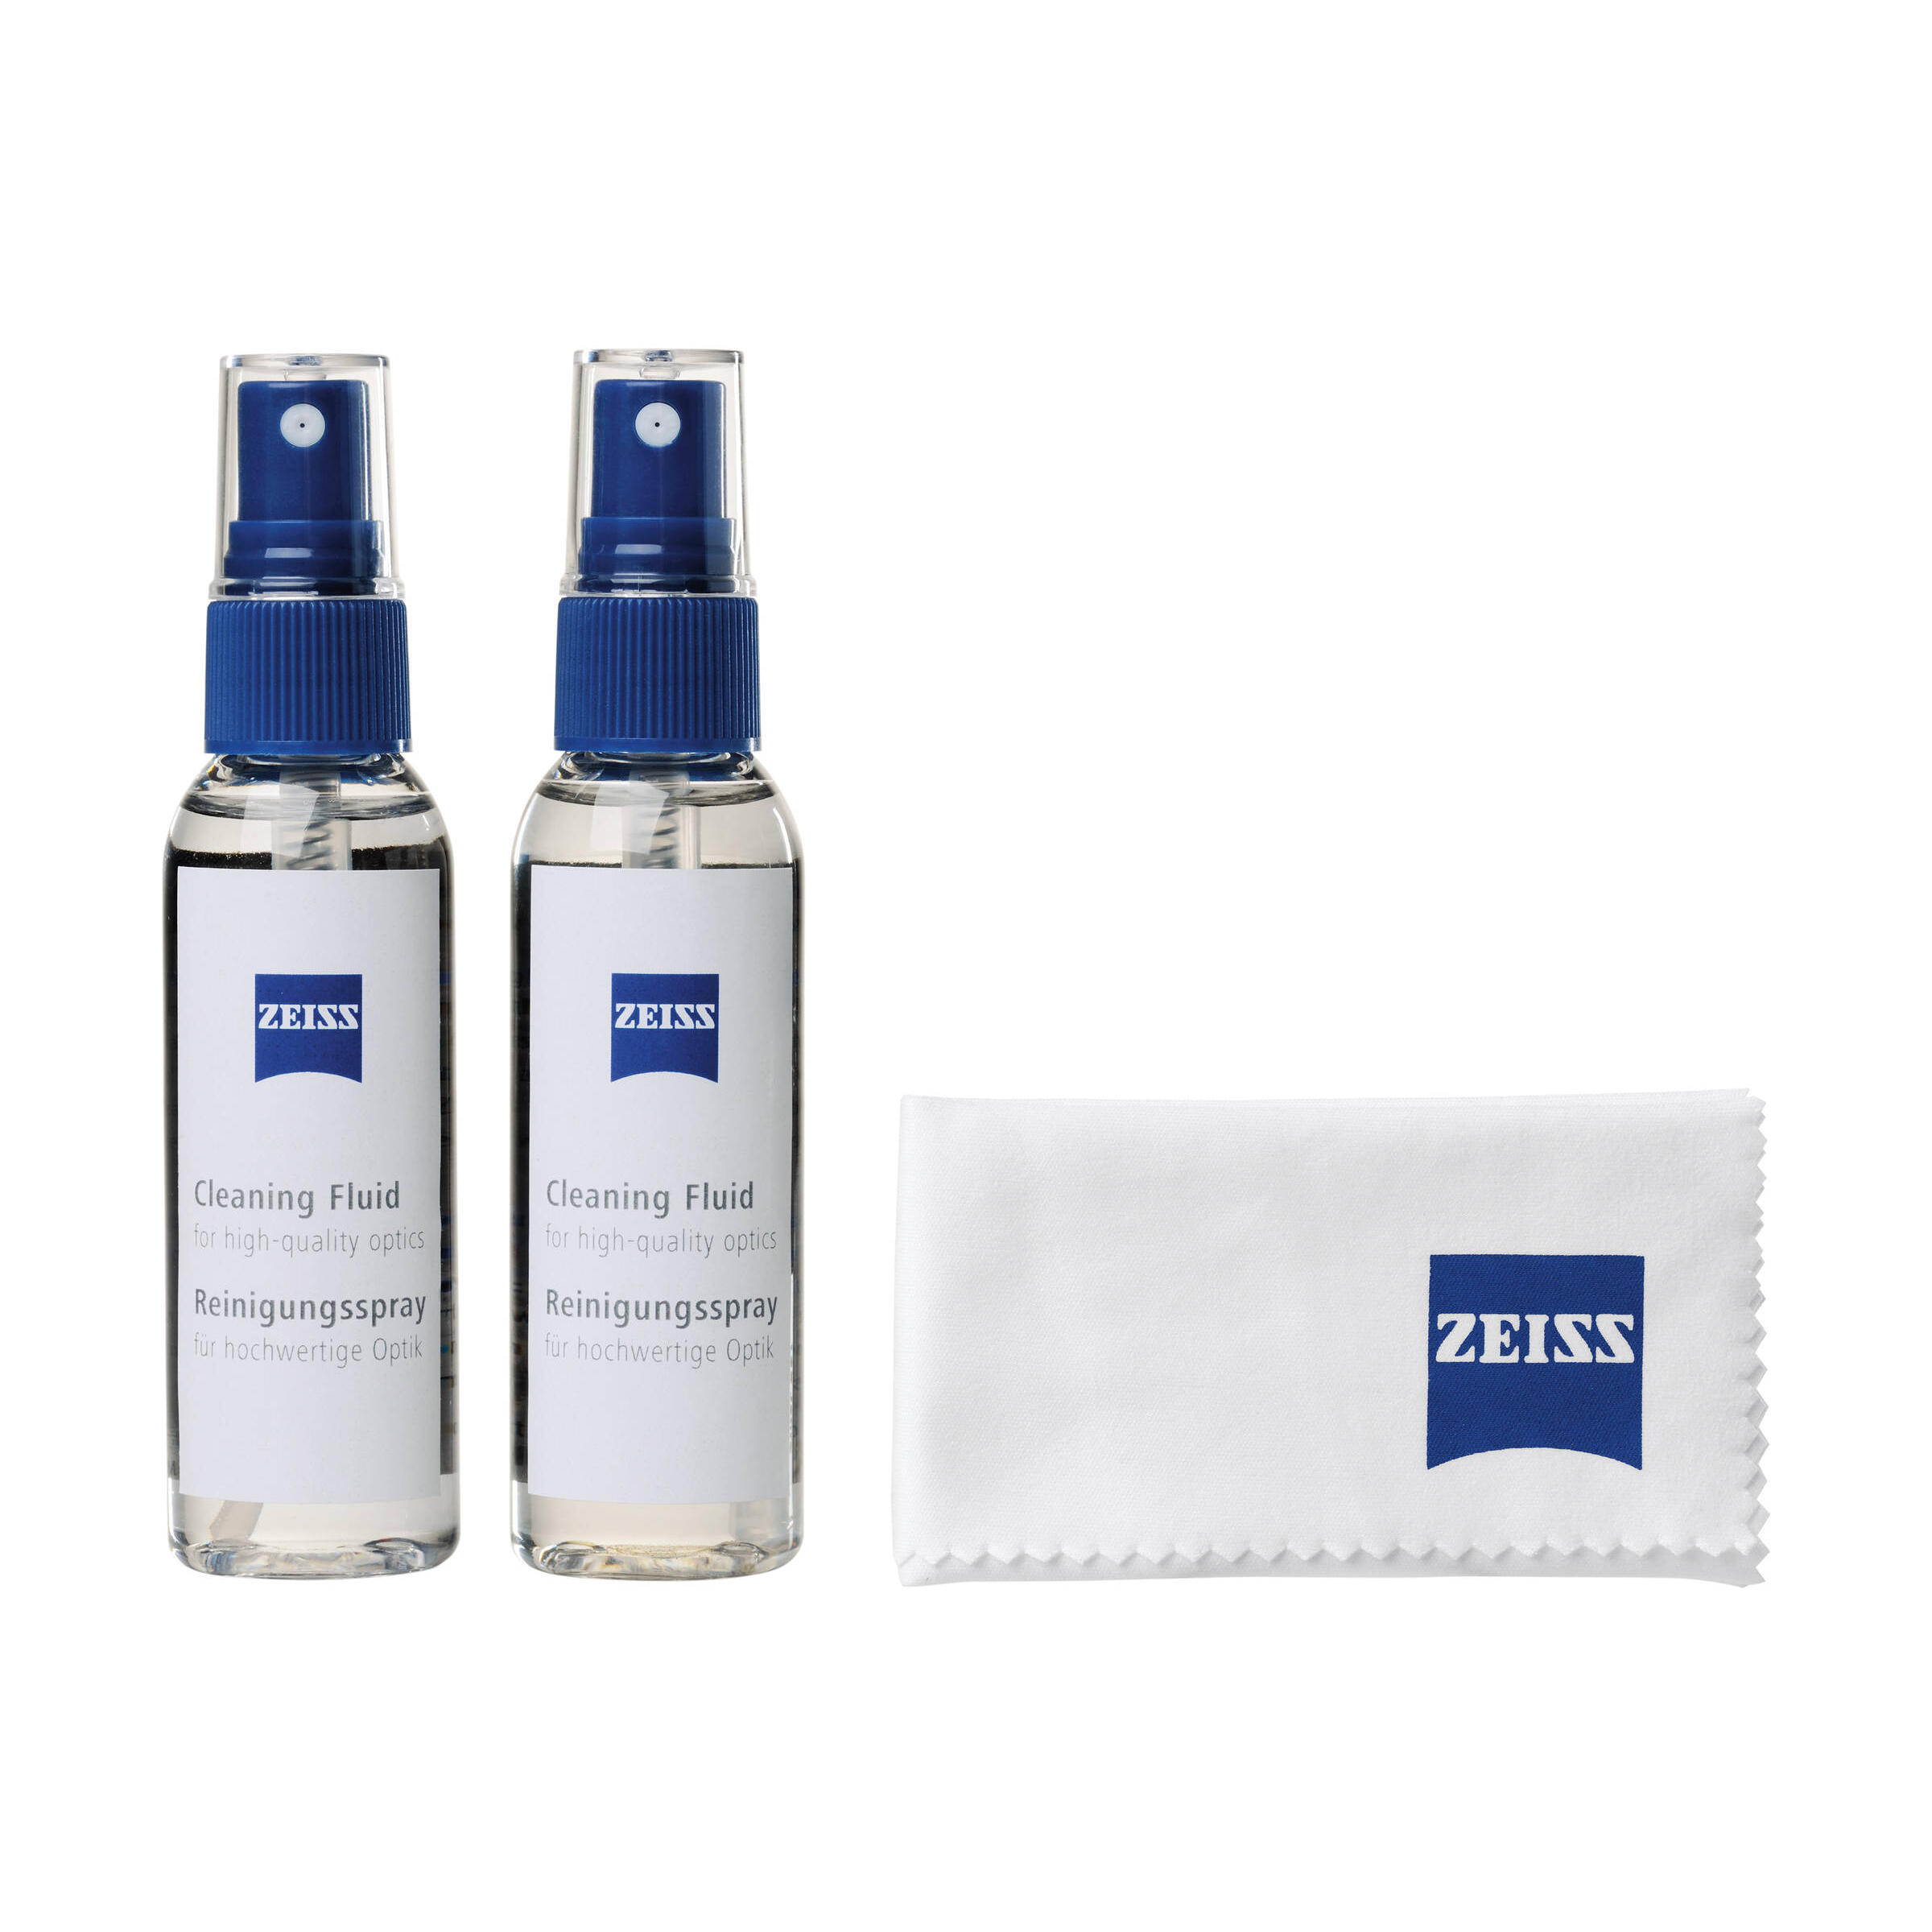 Zeiss Cleaning Fluid - Reinigungsspray